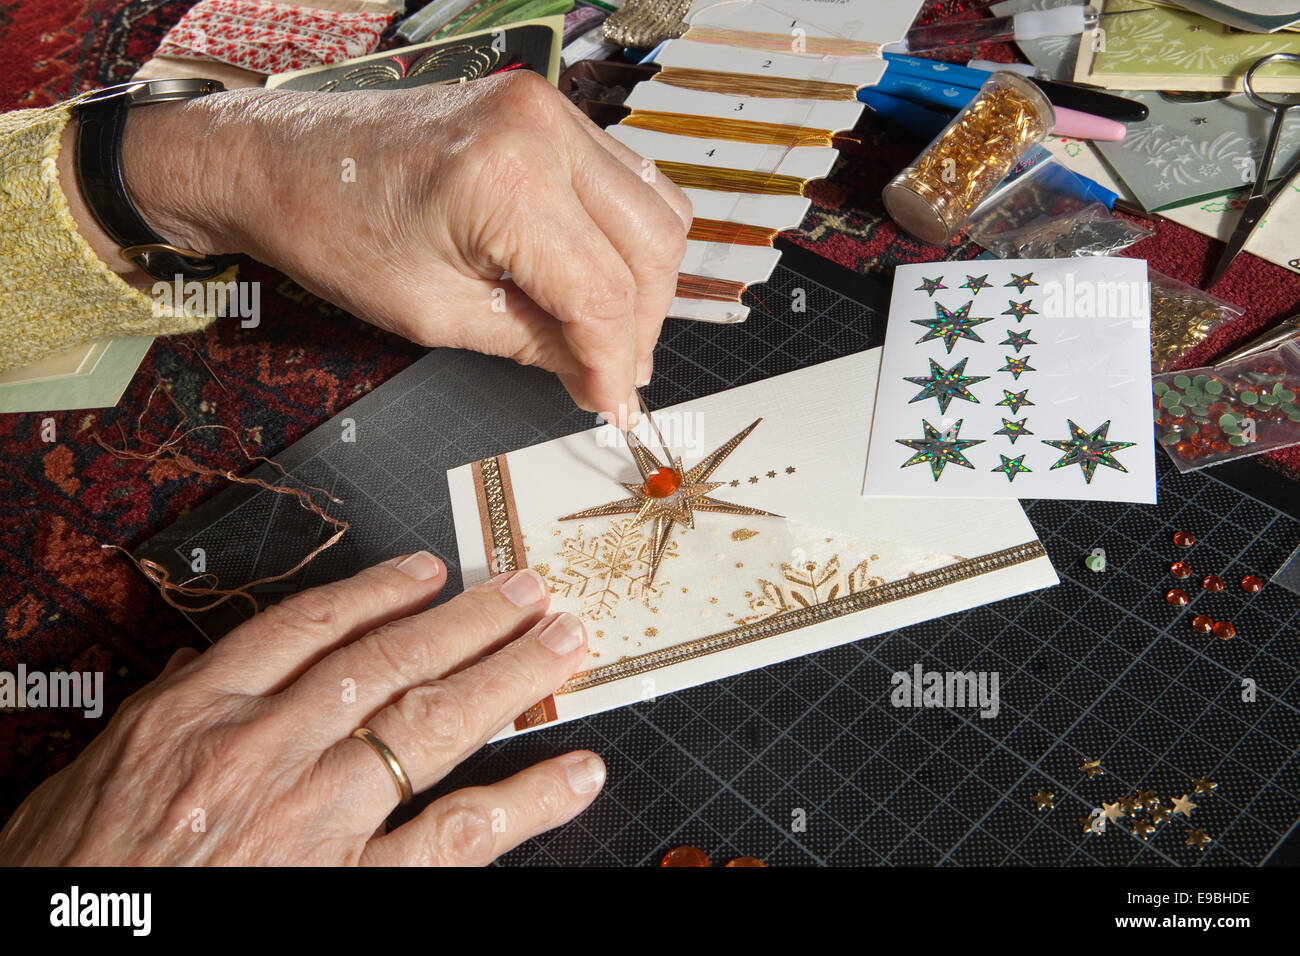 Hands of a woman crafting and scrap-booking christmas cards - Stock Image